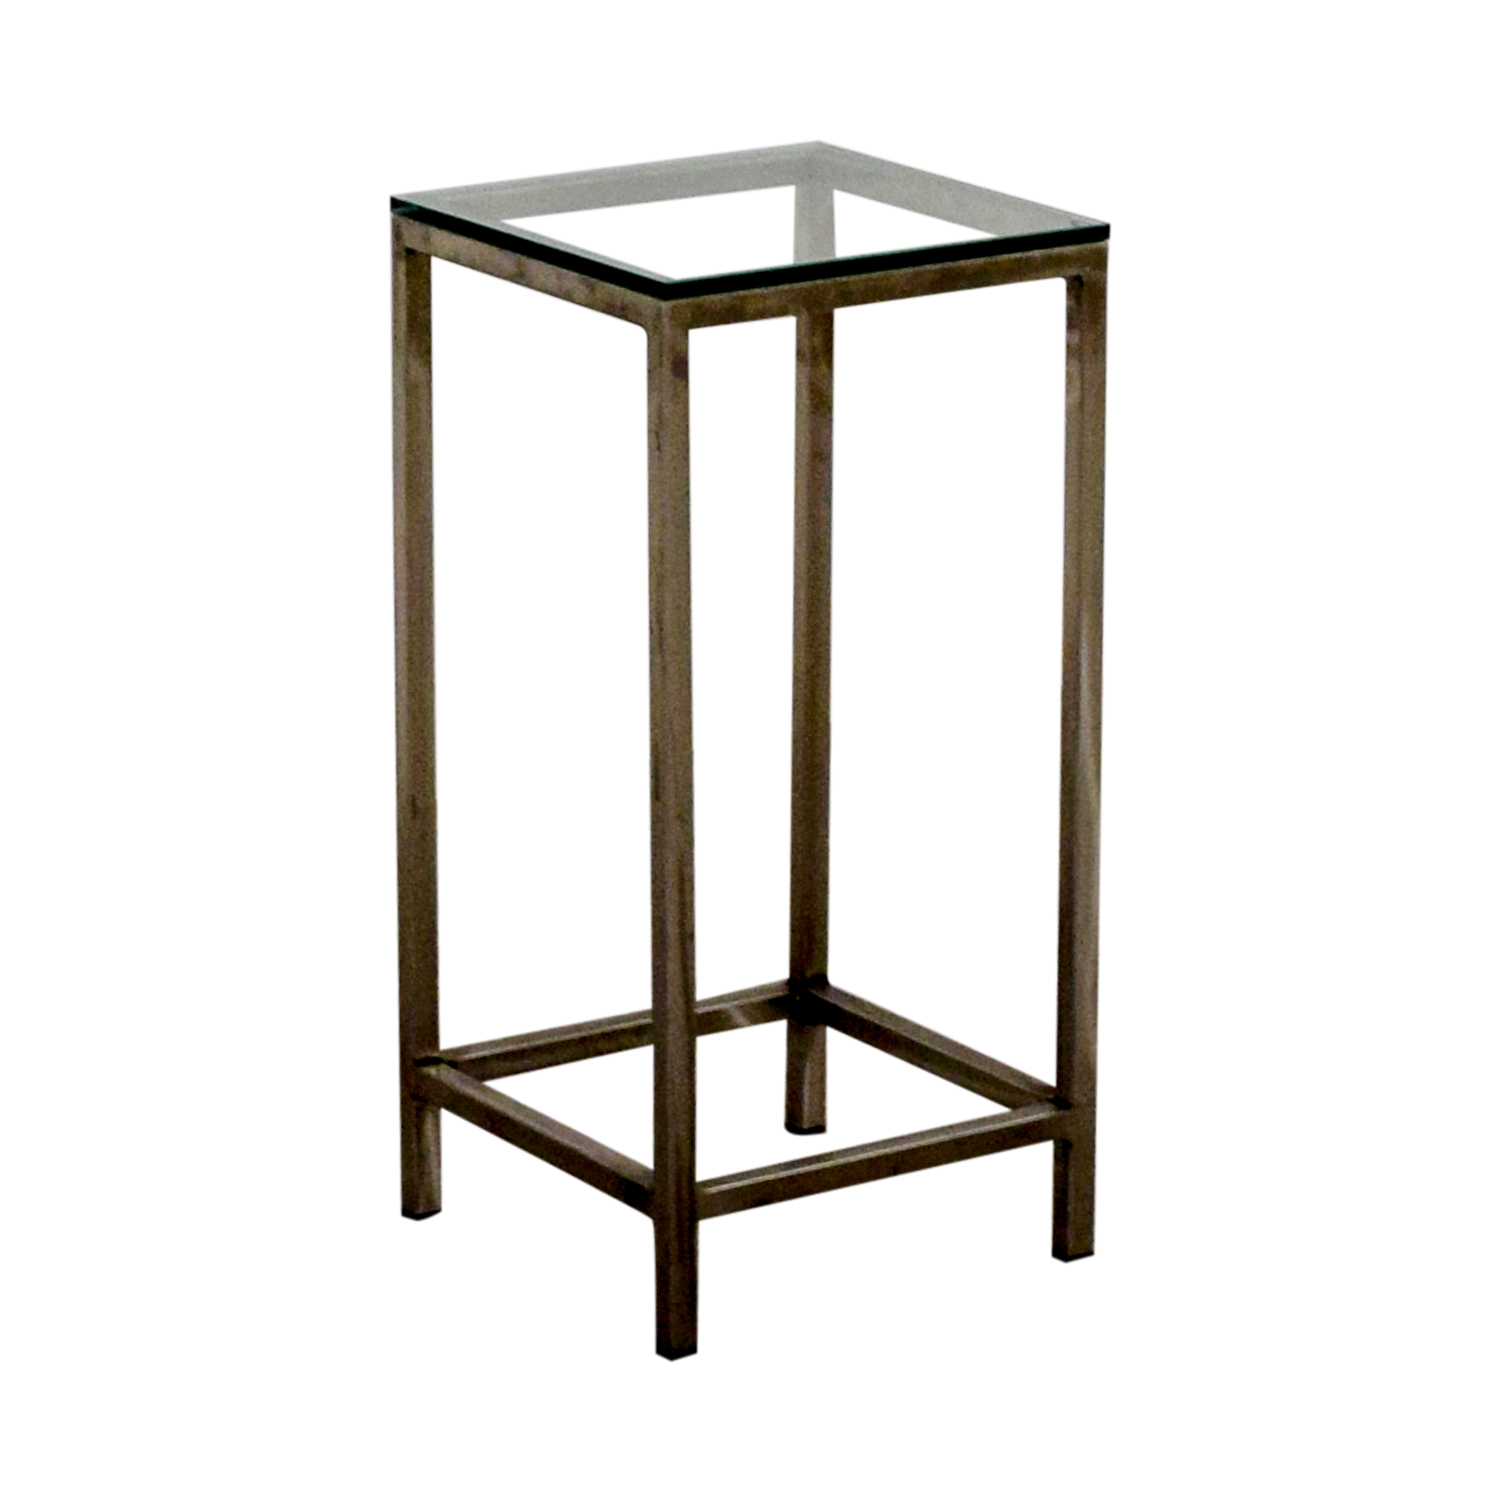 Square Glass End Tables 48 Off Crate And Barrel Crate And Barrel Era Square Glass